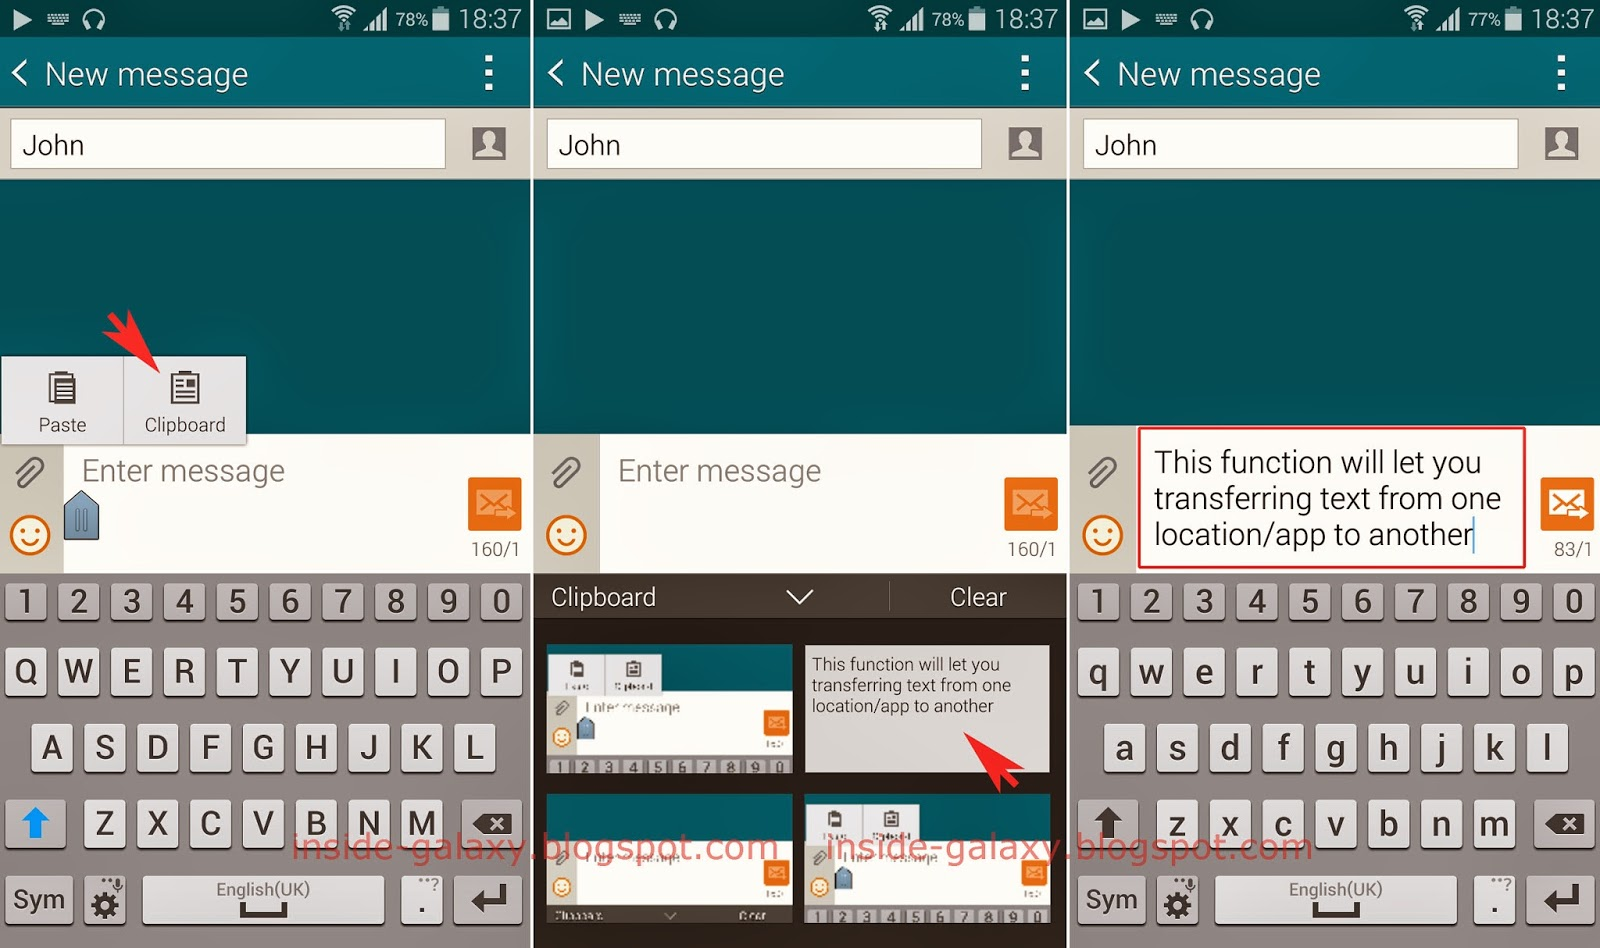 Samsung Galaxy S5: How to Access Clipboard in Android 4 4 2 Kitkat